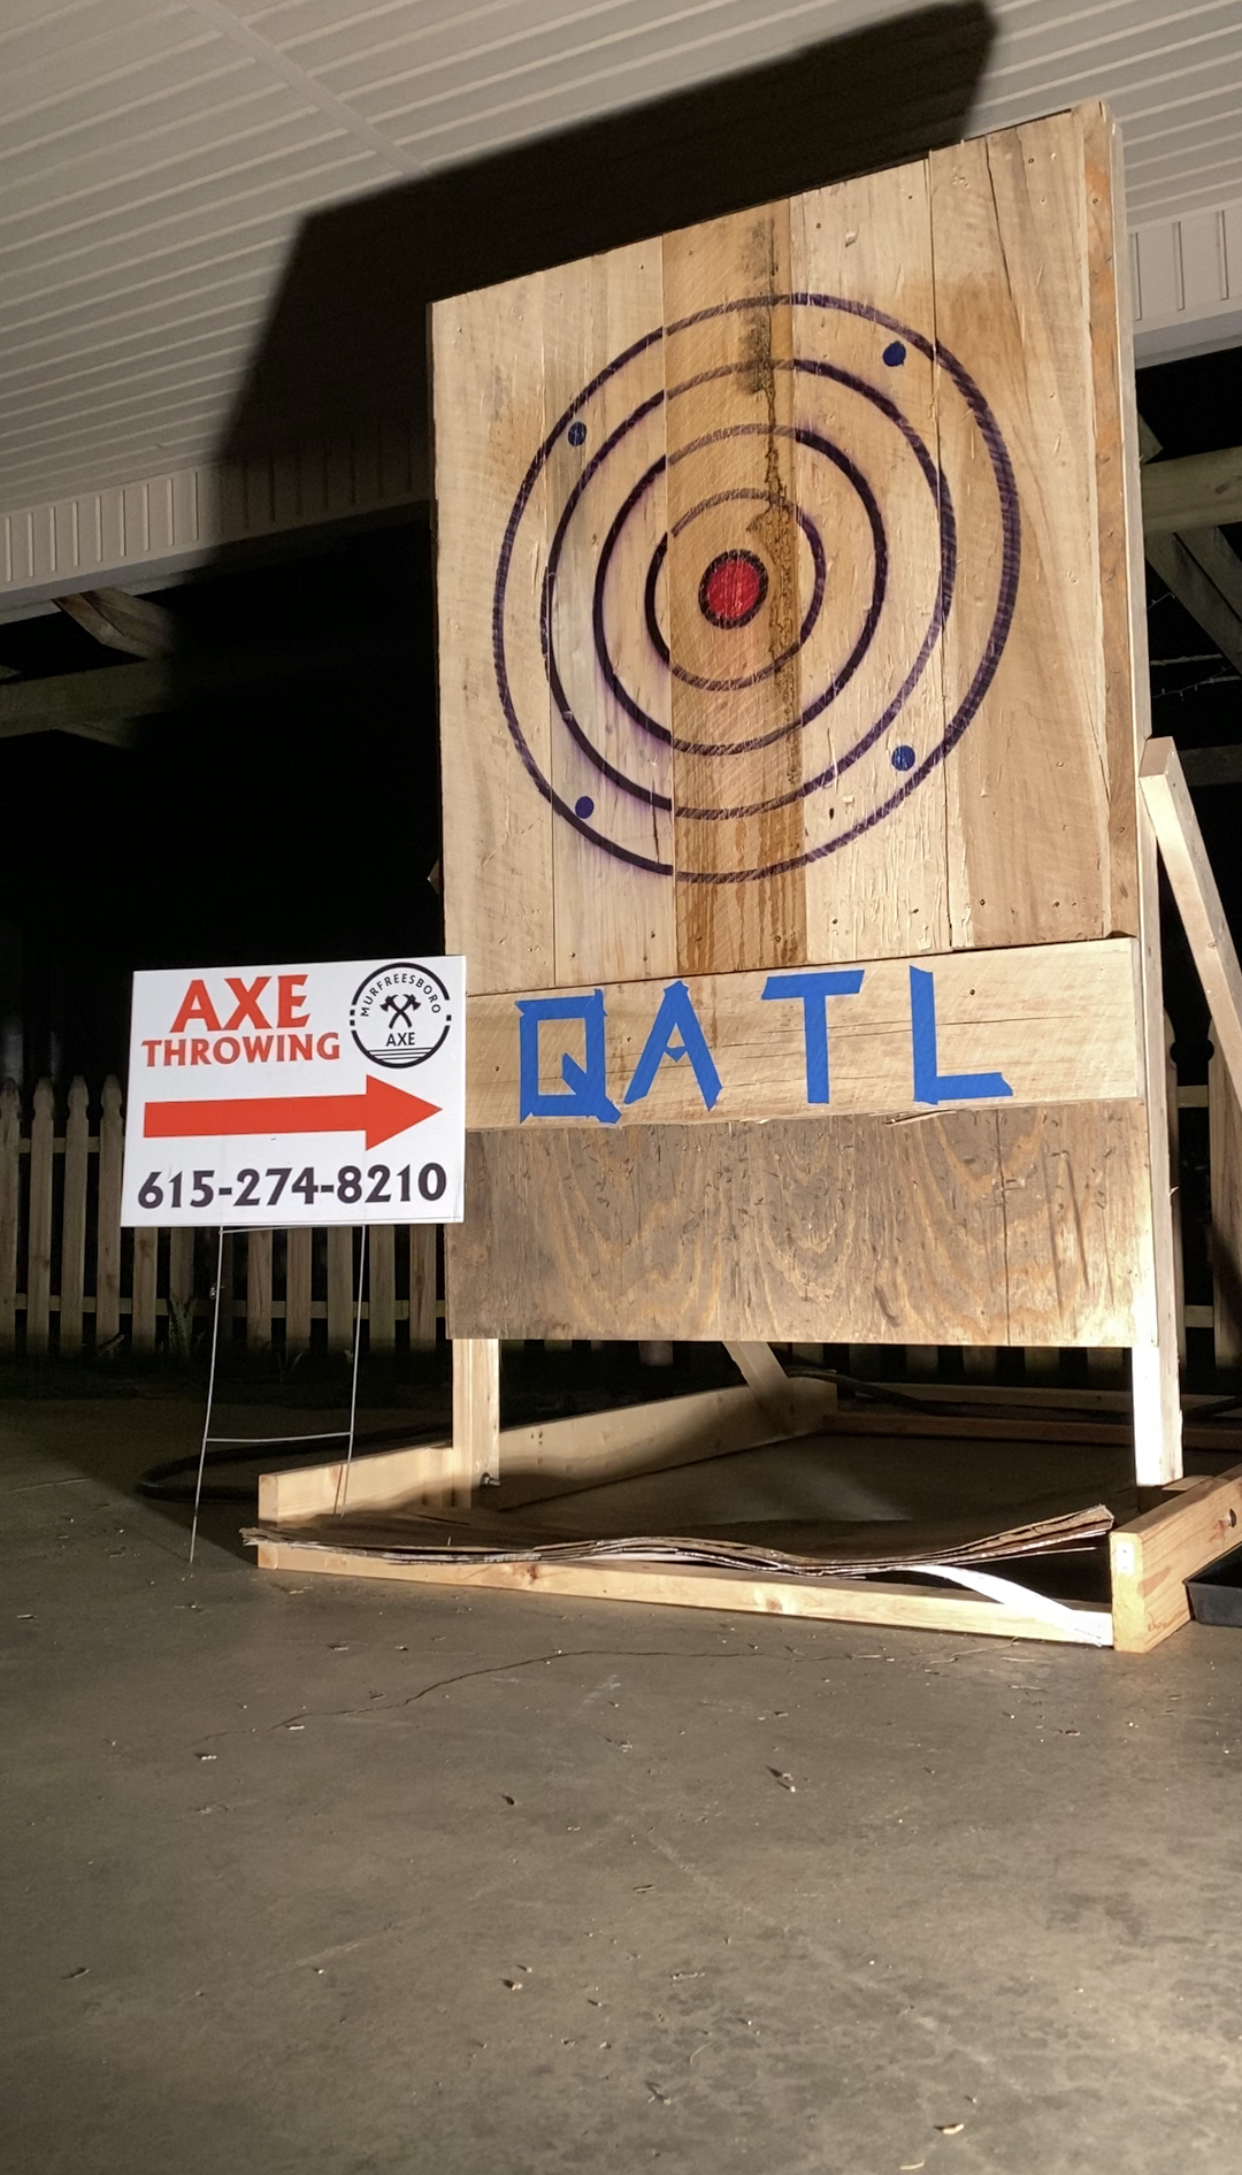 Axe Throwing Continues during COVID-19 Pandemic